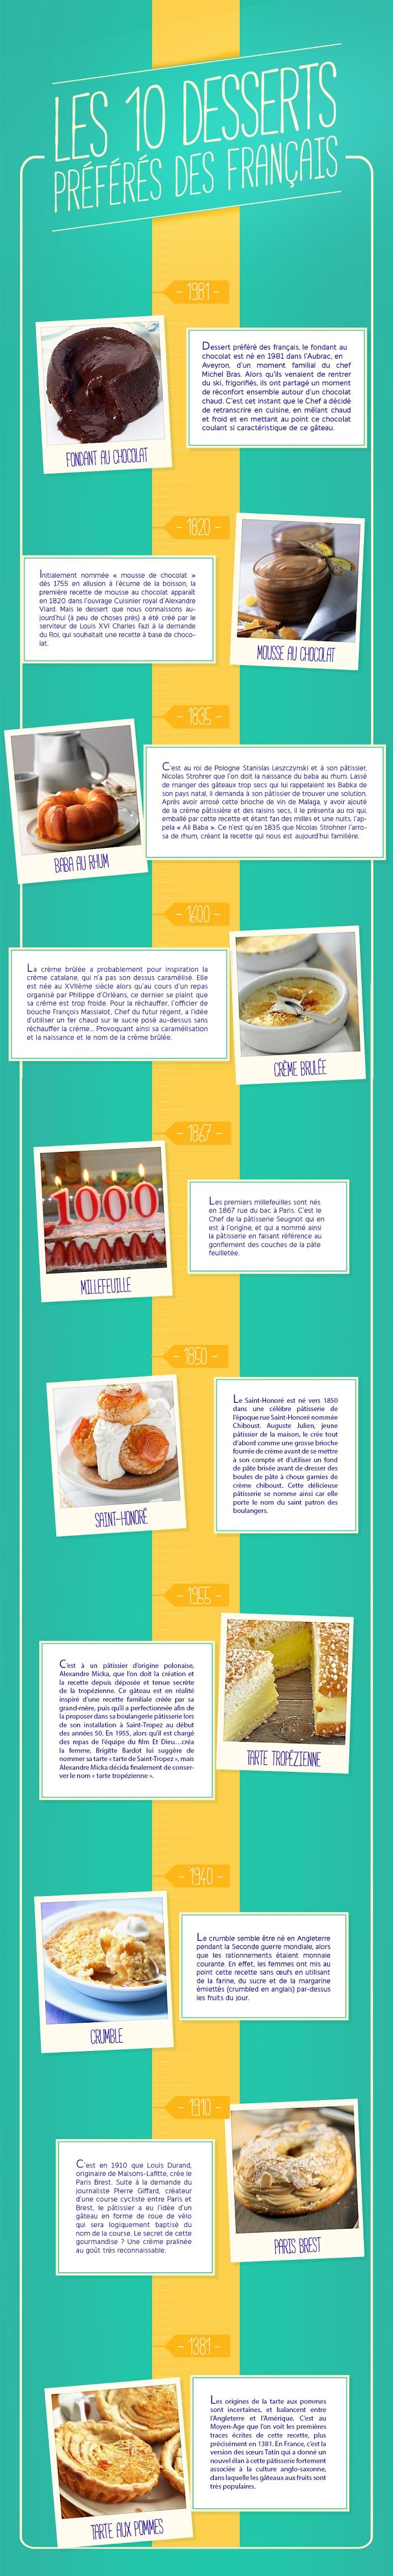 84 best La nourriture et les traditions- Intermedidate Mid images on ...